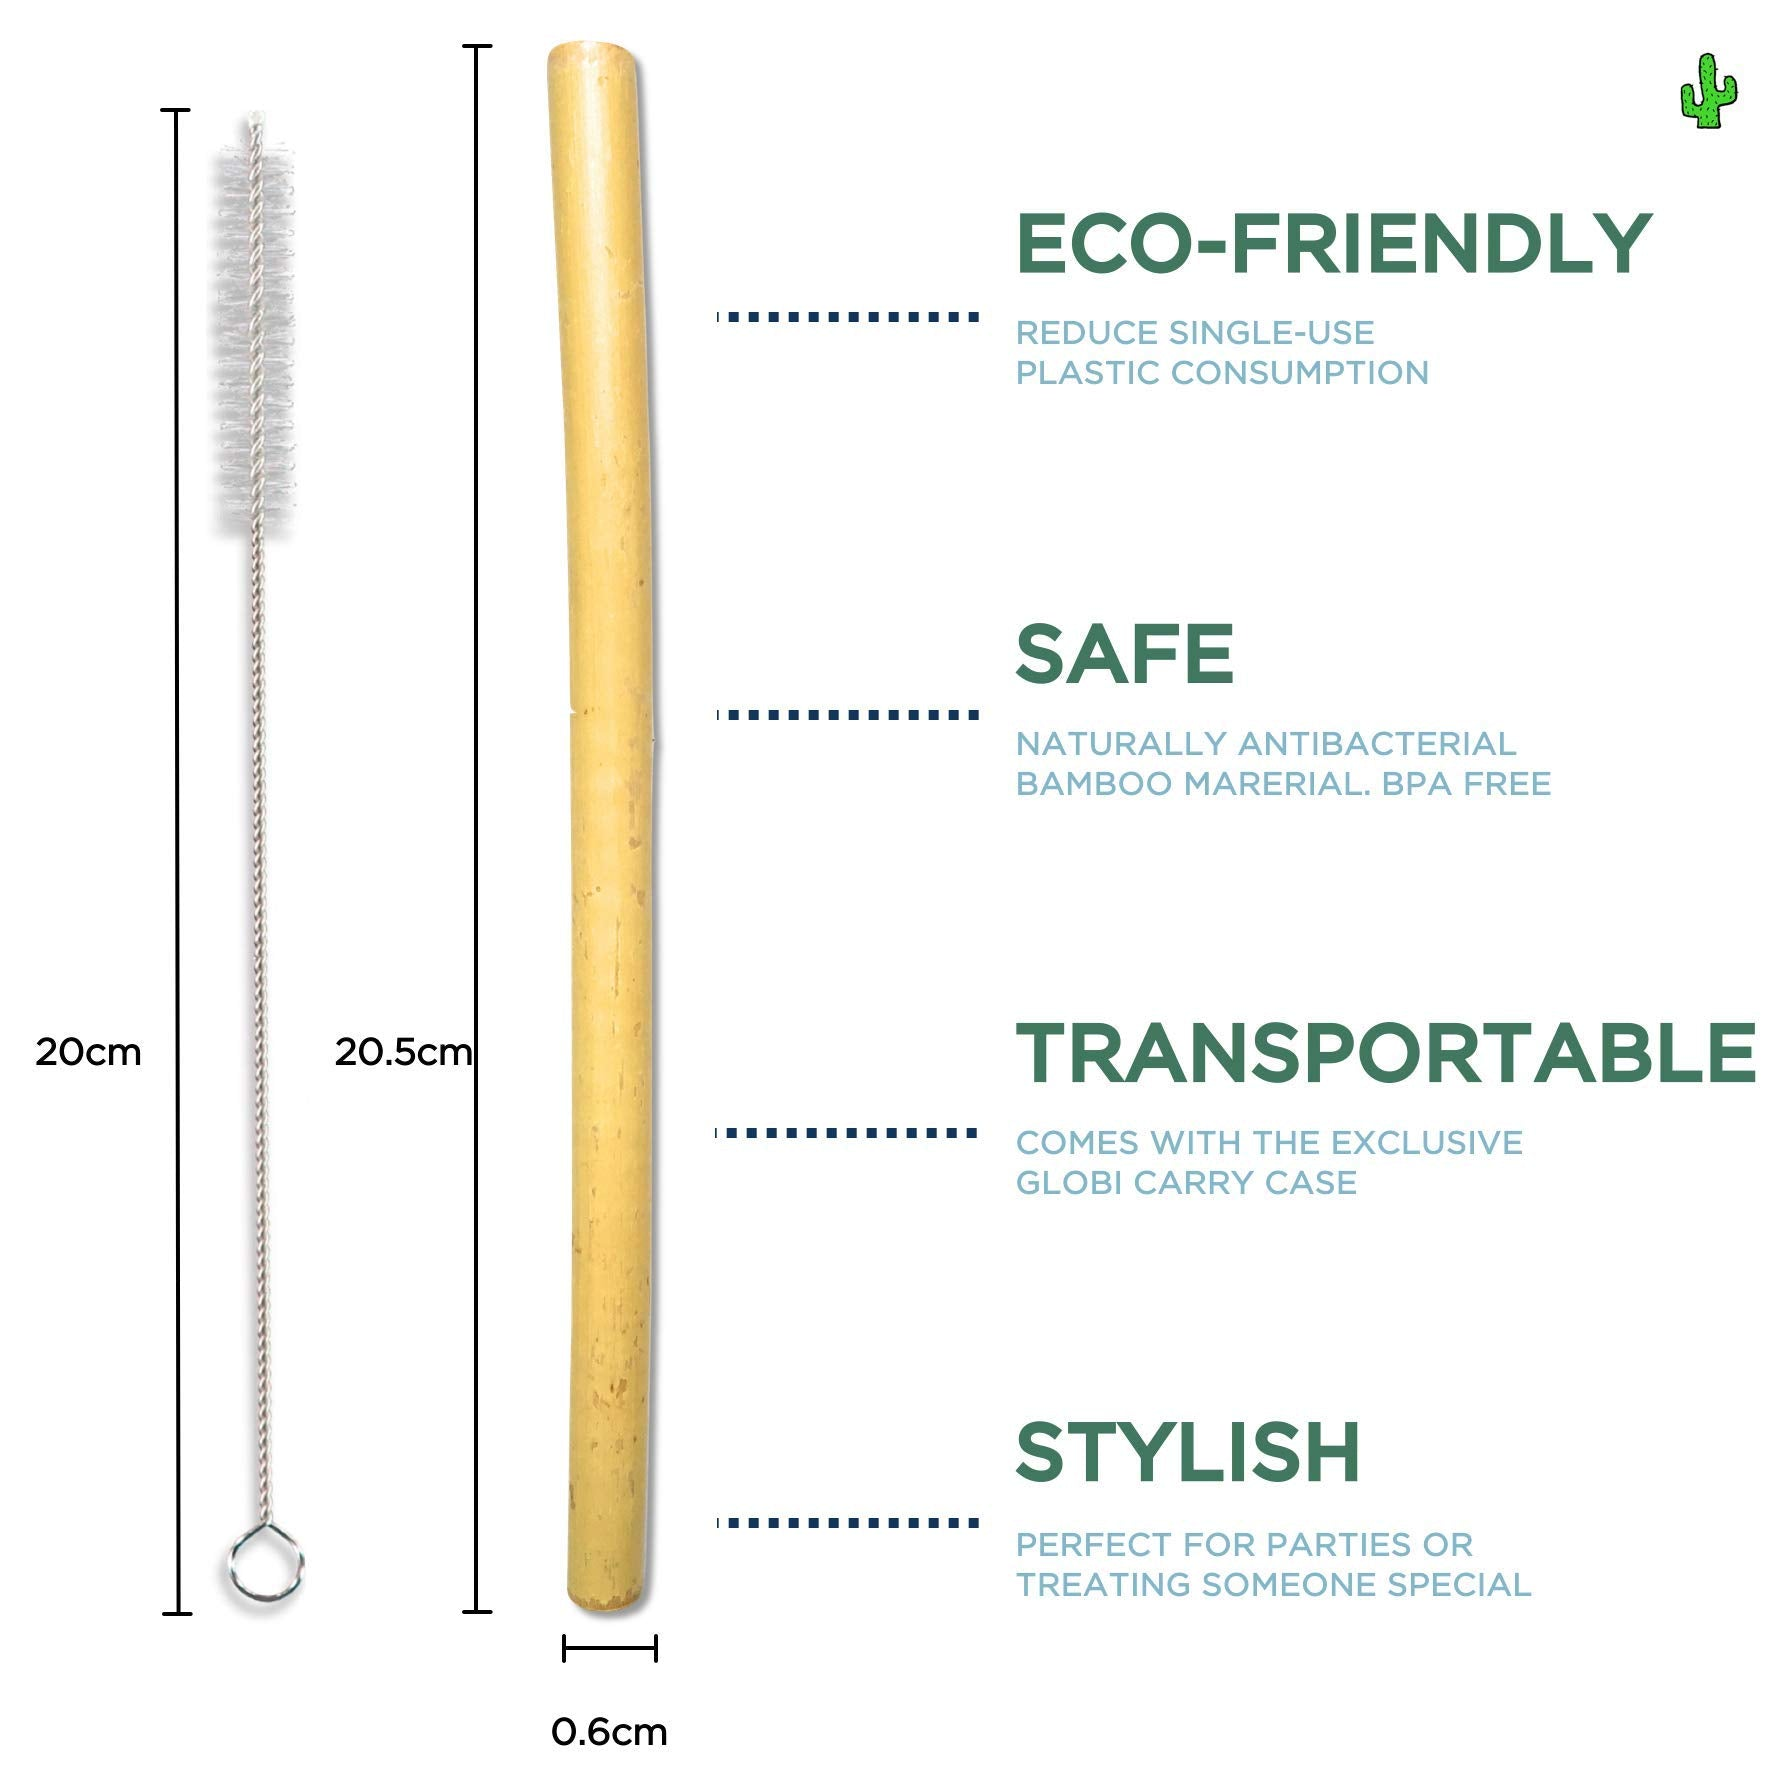 8 Bamboo Straws & 2 Cleaners